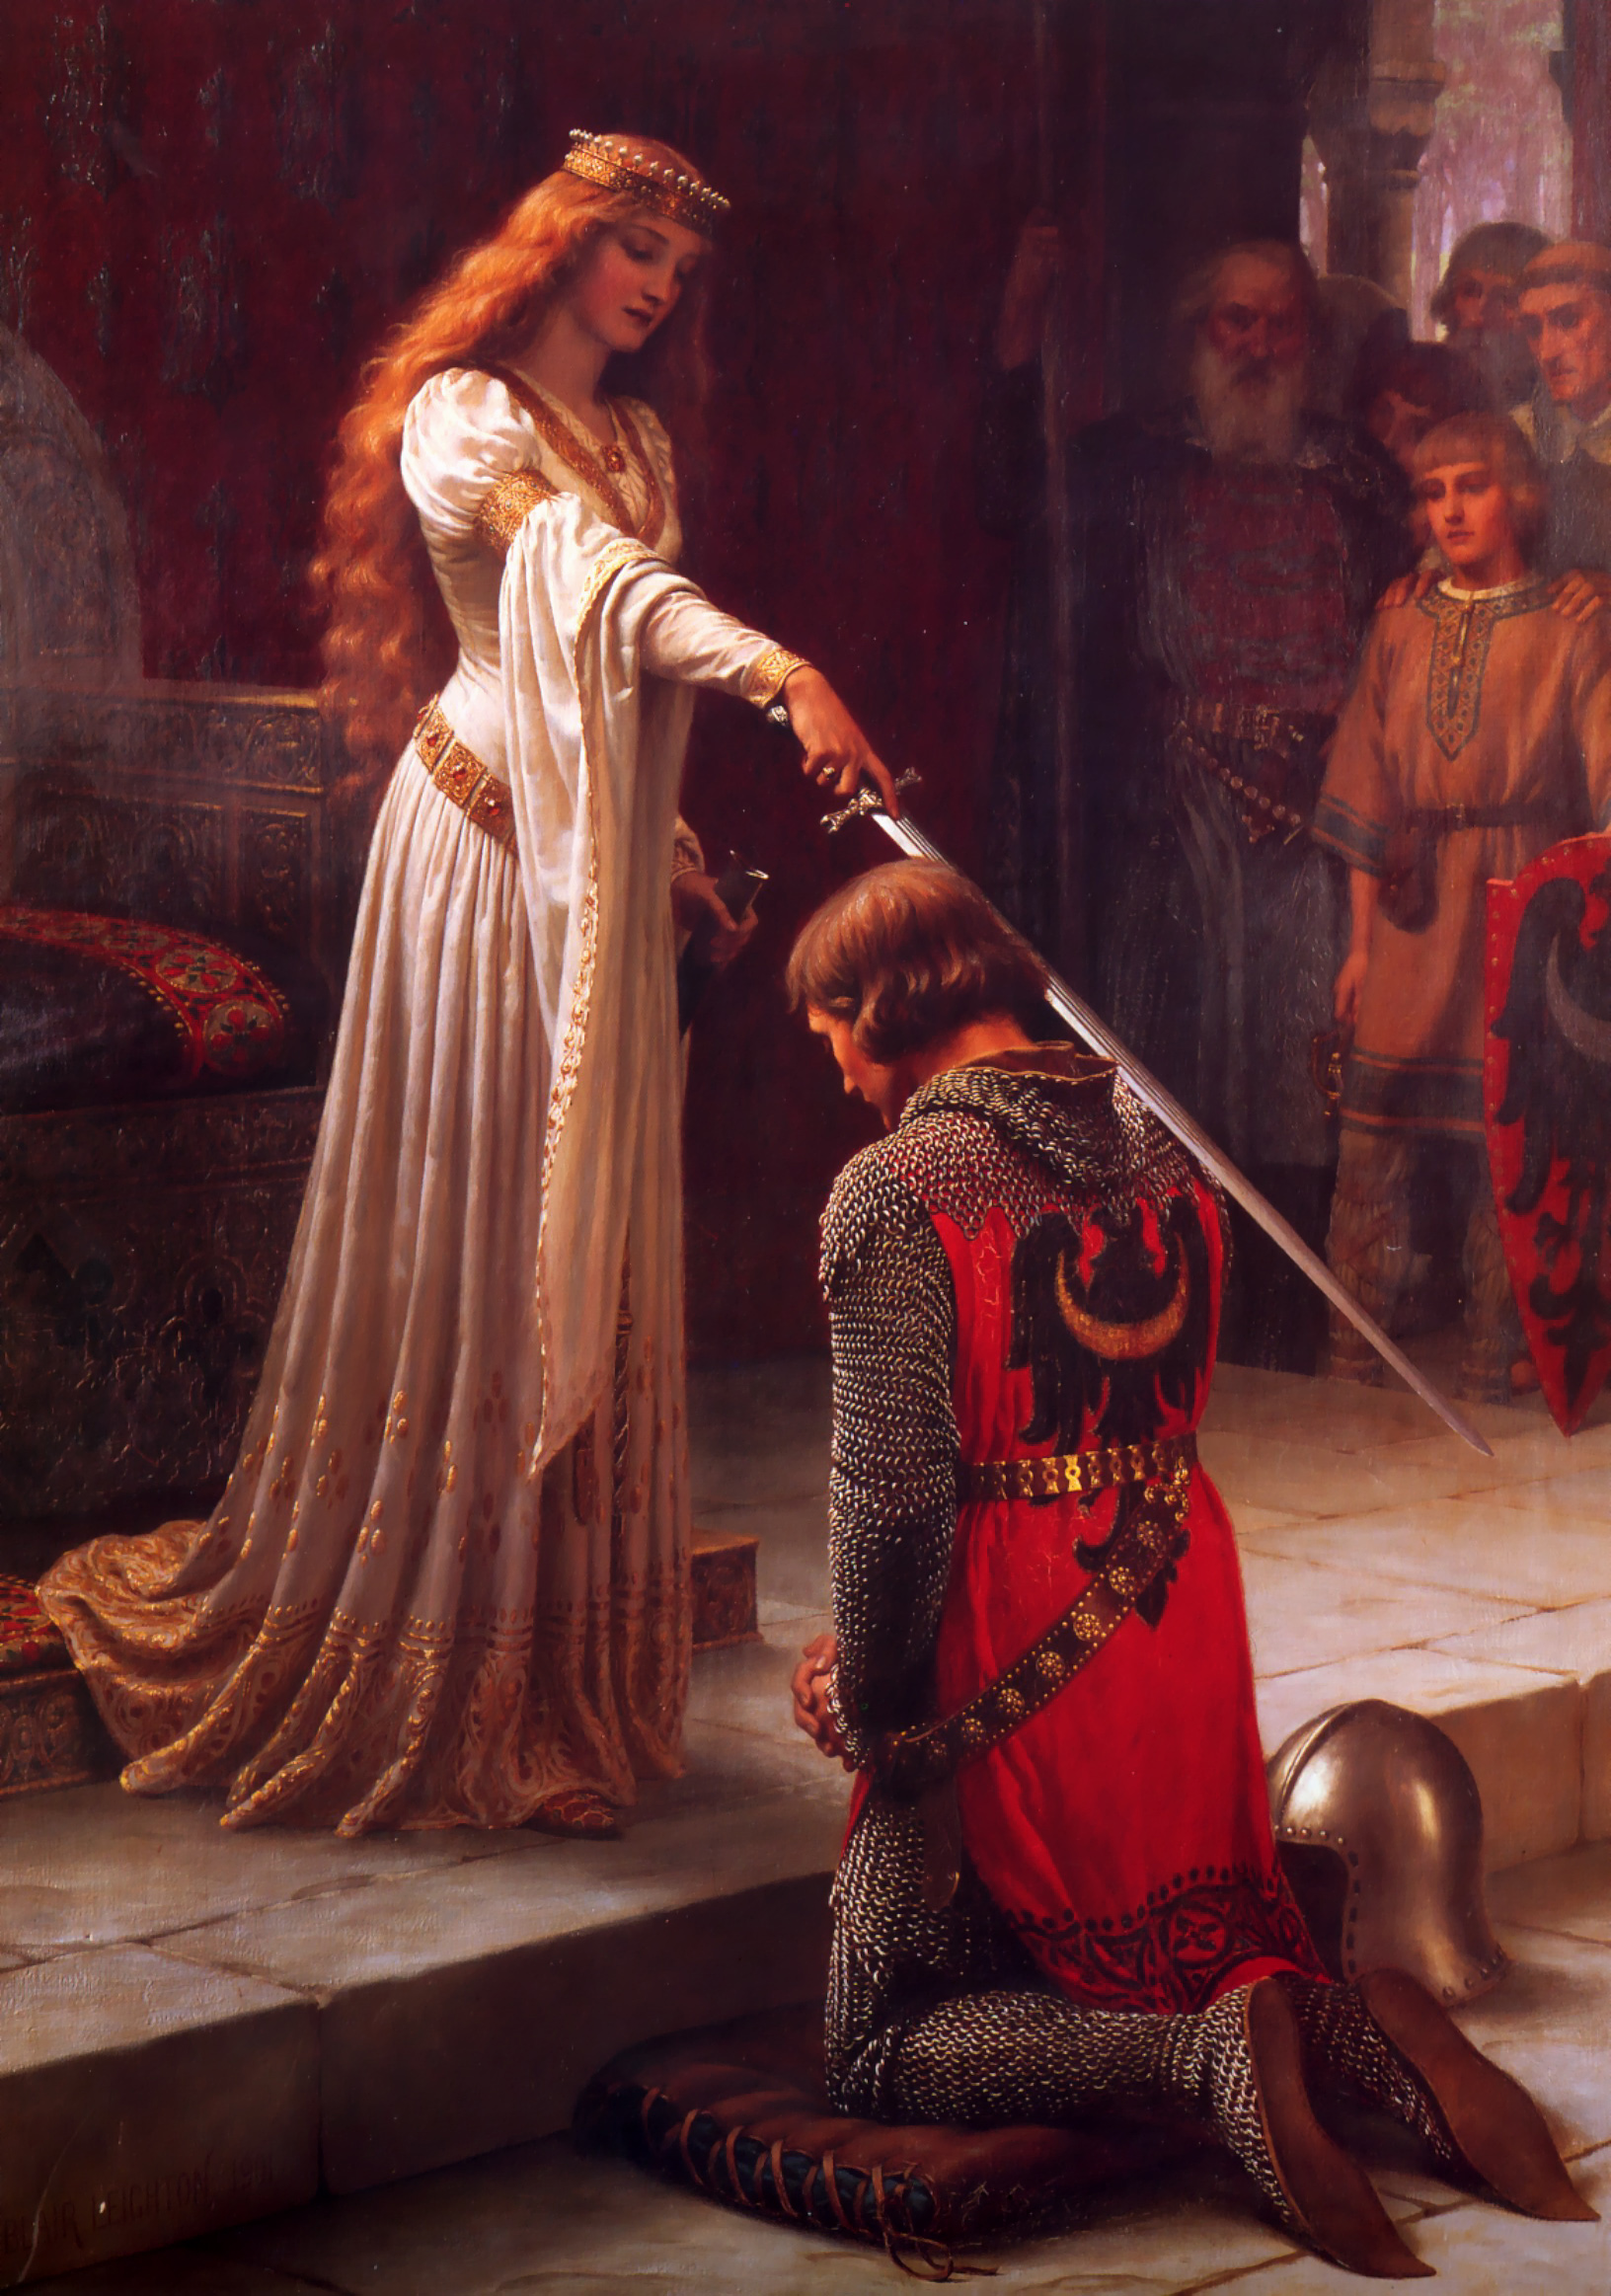 aa_Edmund_blair_leighton_accolade